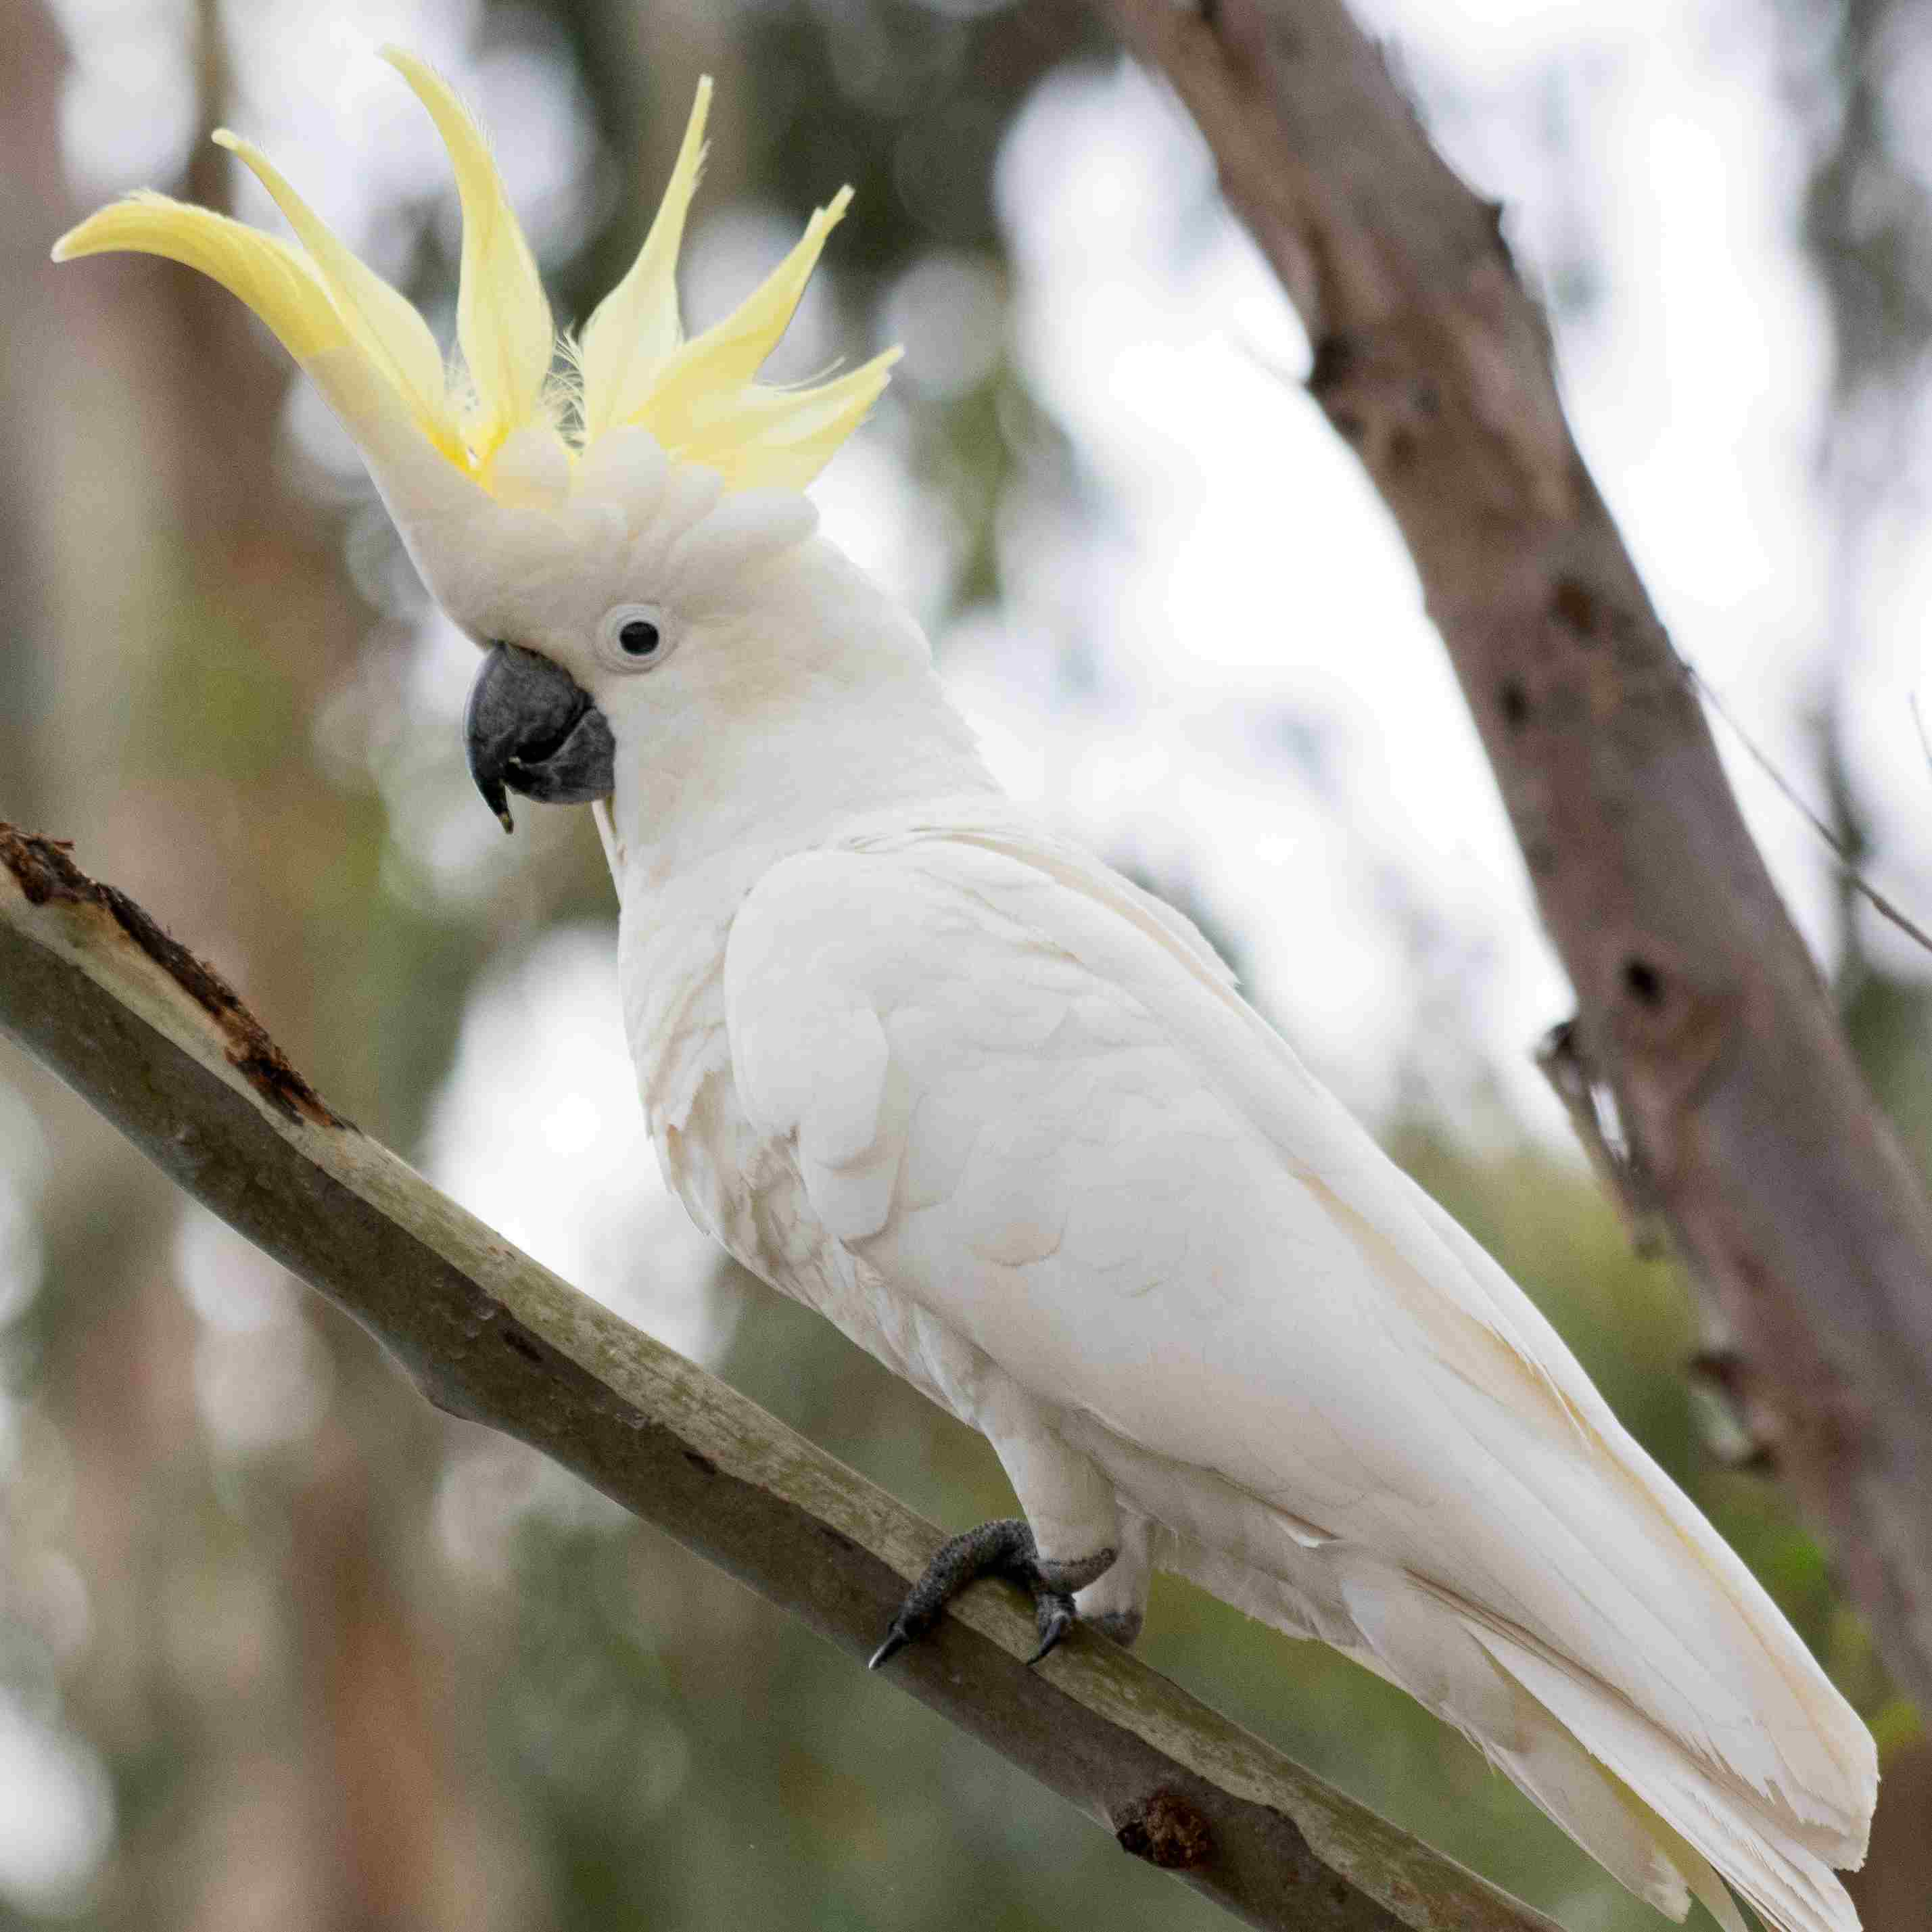 sulphur-crested cockatoo in a tree